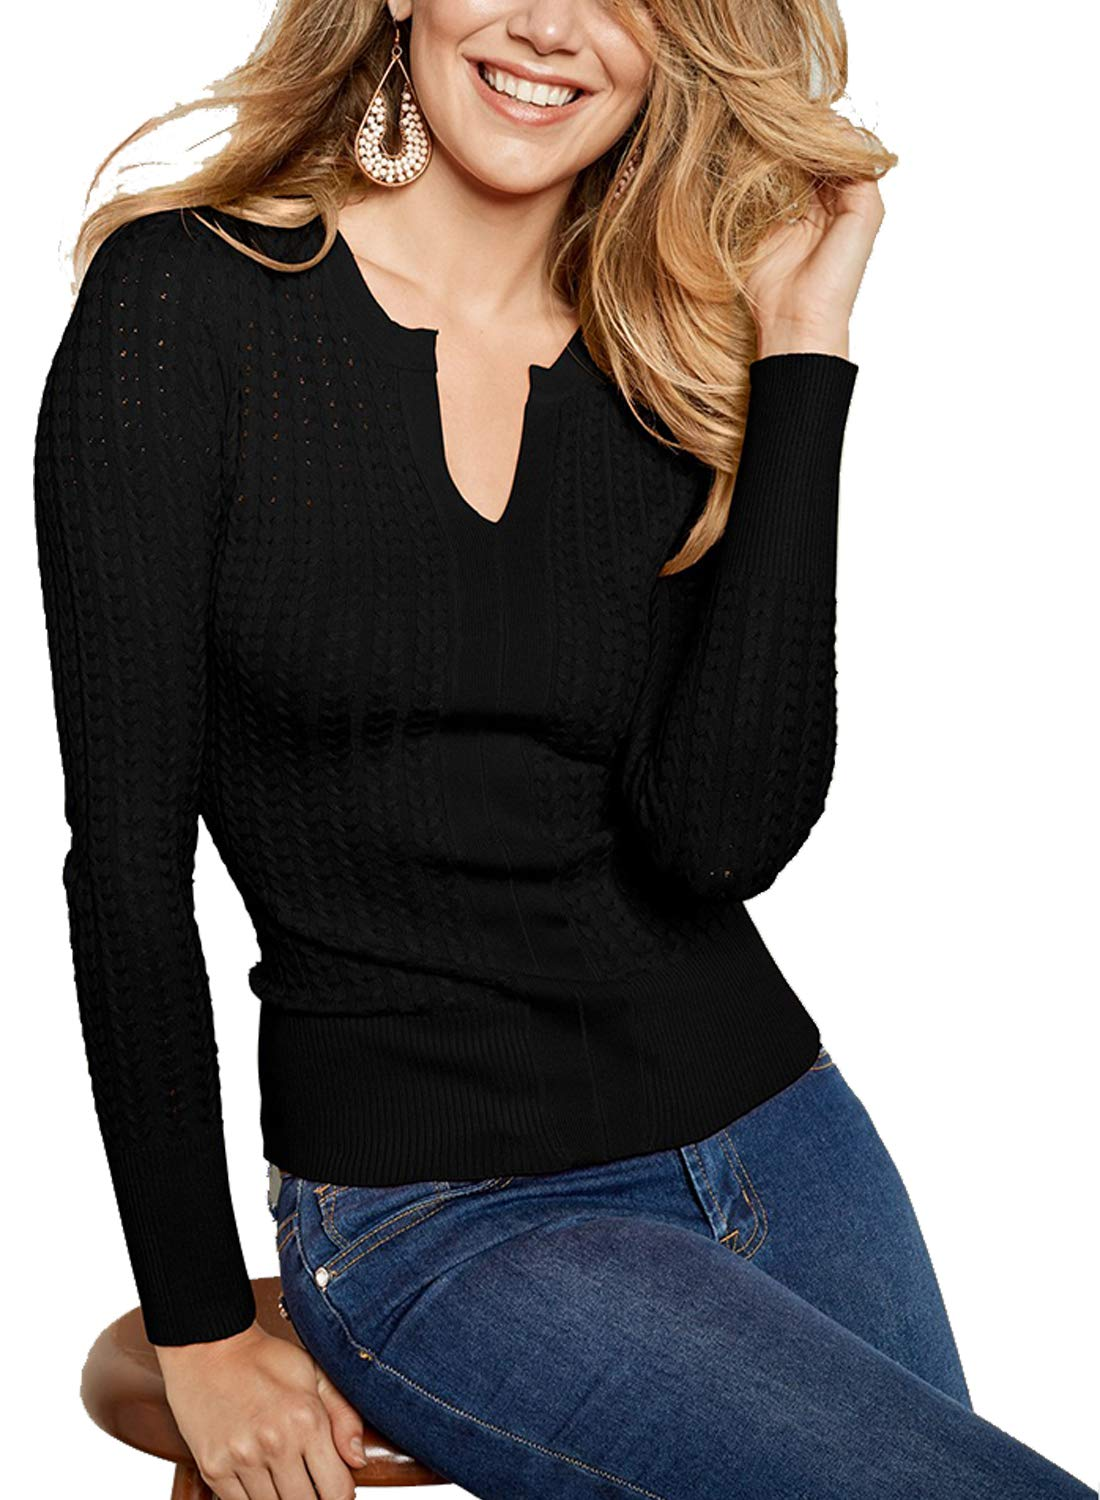 ZKESS Womens Long Sleeve Casual Henley Tops Knit Ribbed Thermal Fitted Sweatshirts Sweater Black Medium Size